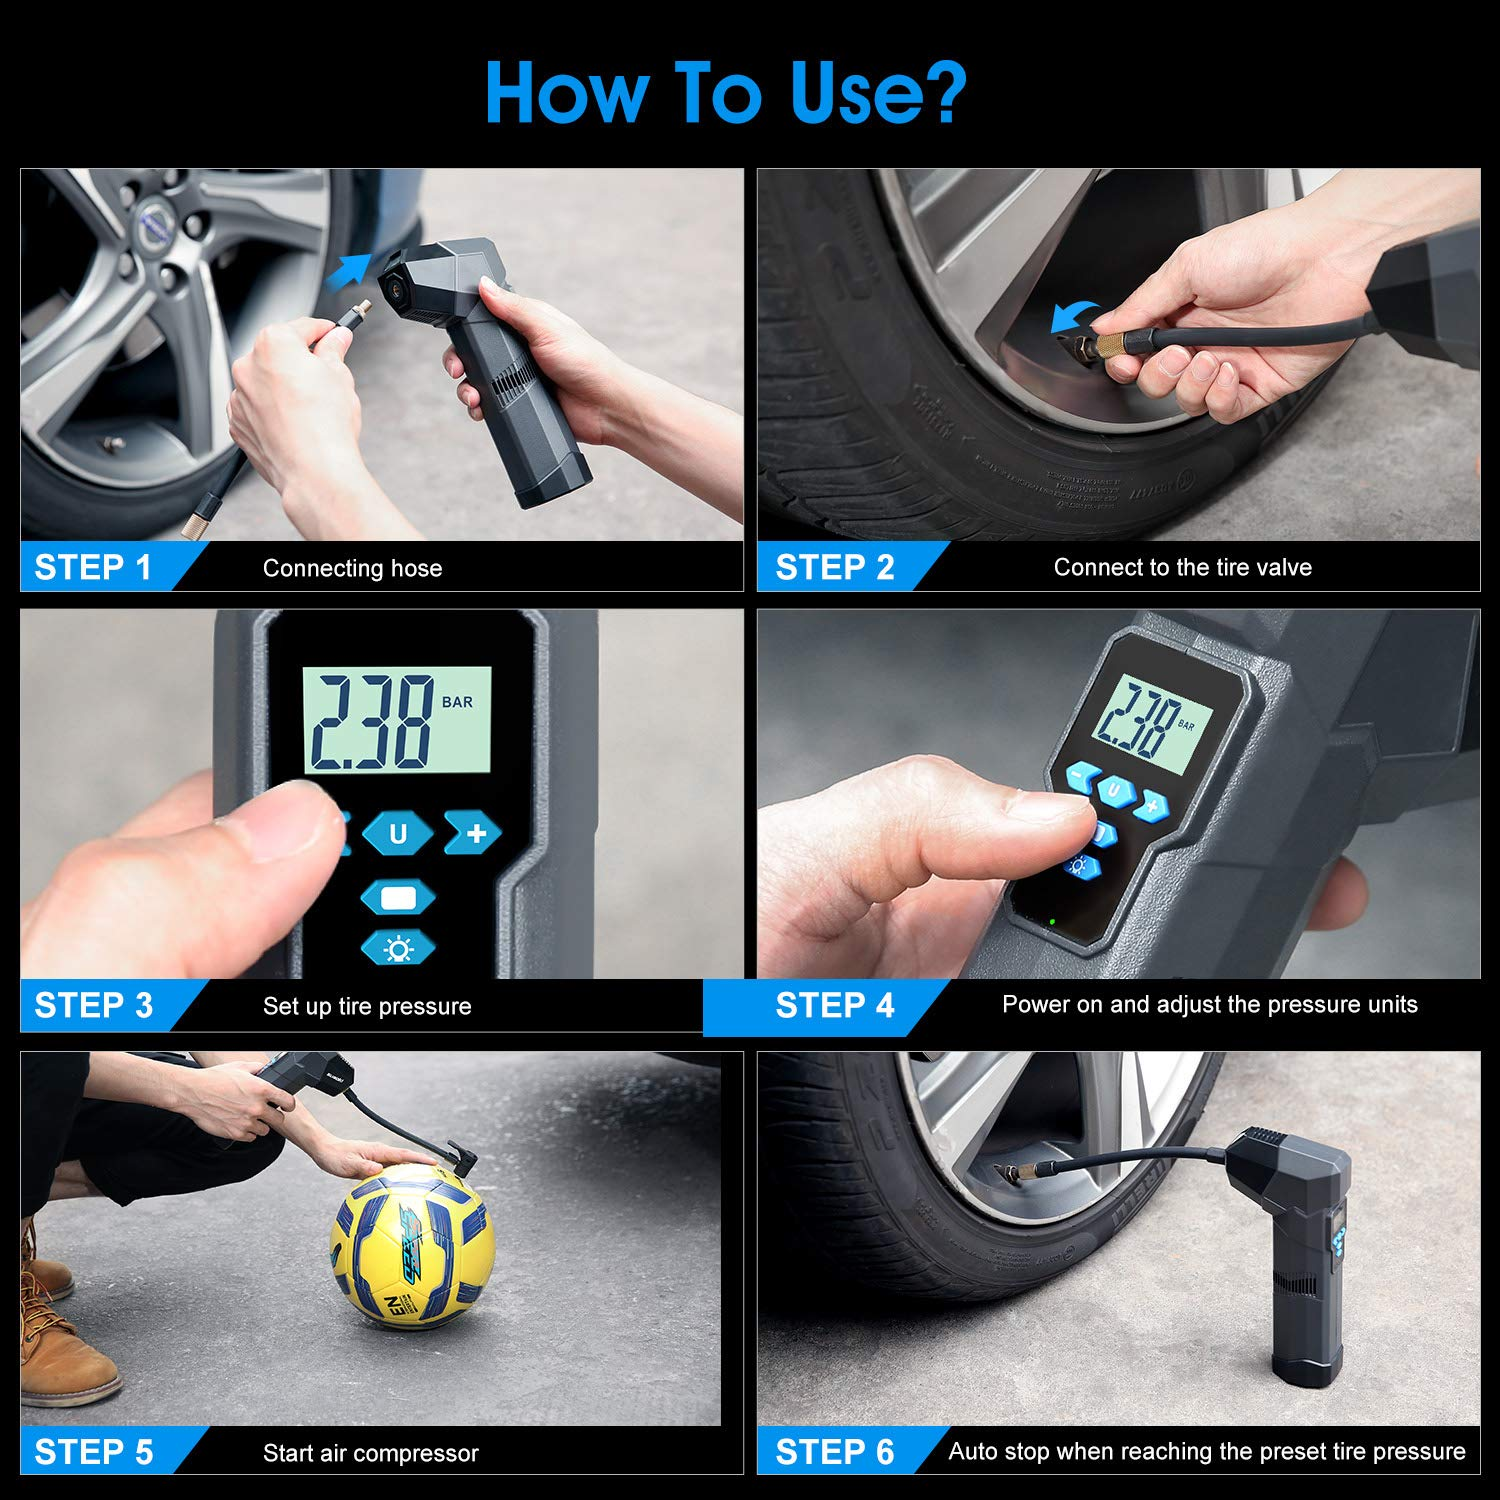 Basketball Airbeds SUAOKI Cordless Tire Inflator Handheld Air Compressor Rechargeable 2000mAh Li-ion Battery,Preset Feature,Auto Shut Off,Digital Pressure Gauge for Car Bicycle Motorcycles